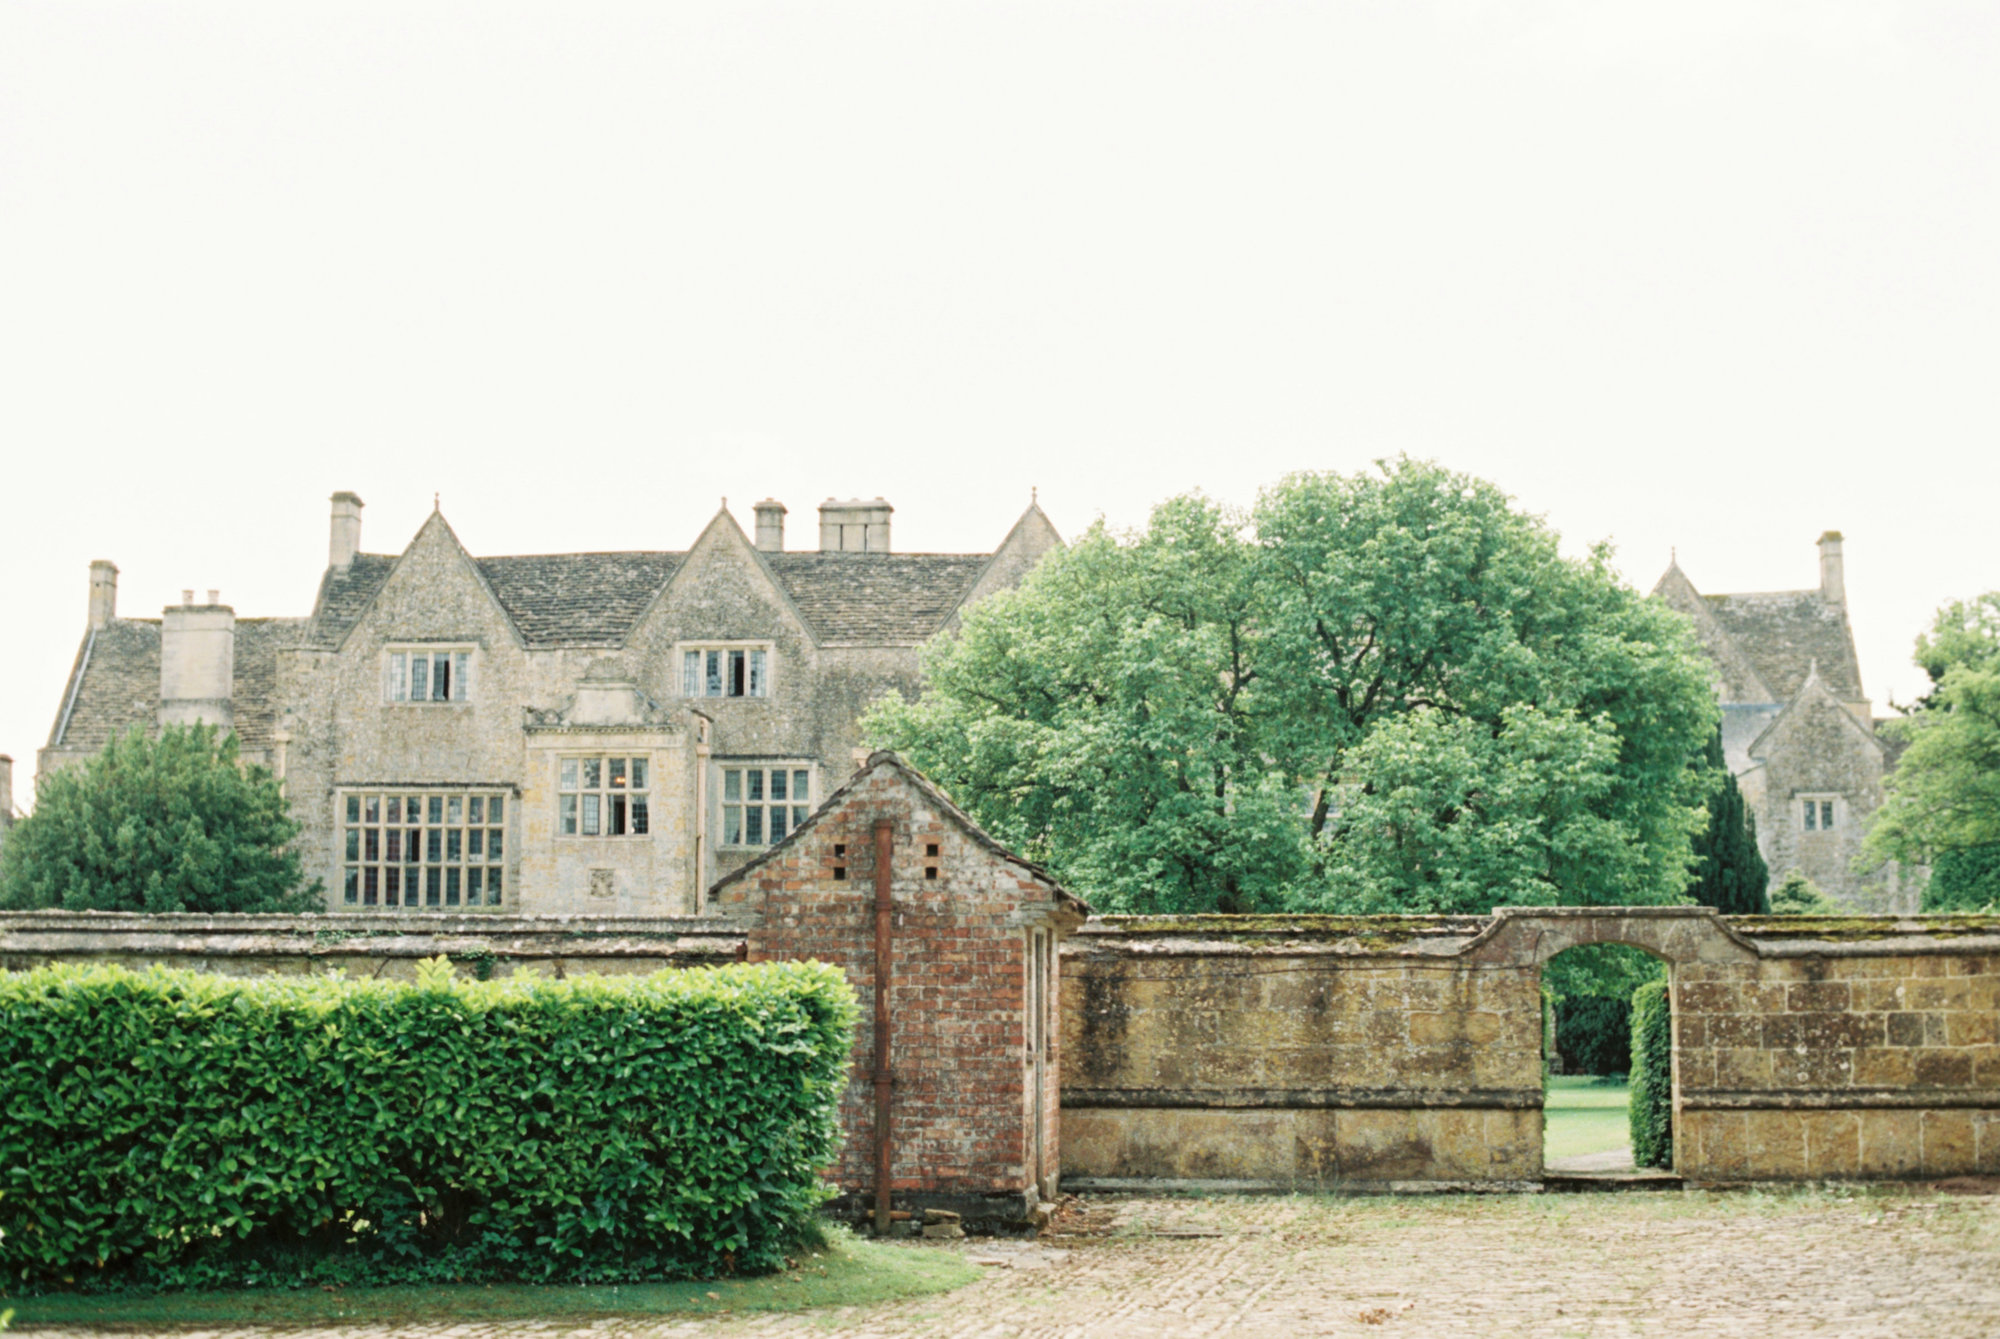 Luxury Wedding Planner UK | Jennifer & Timothy's English Country Manor Wedding | Soft Pink Pale Blue White and Silver Toned Green Neutral Tones American Bride North Cadbury Court | Nicole Colwell Photography 0407.jpg